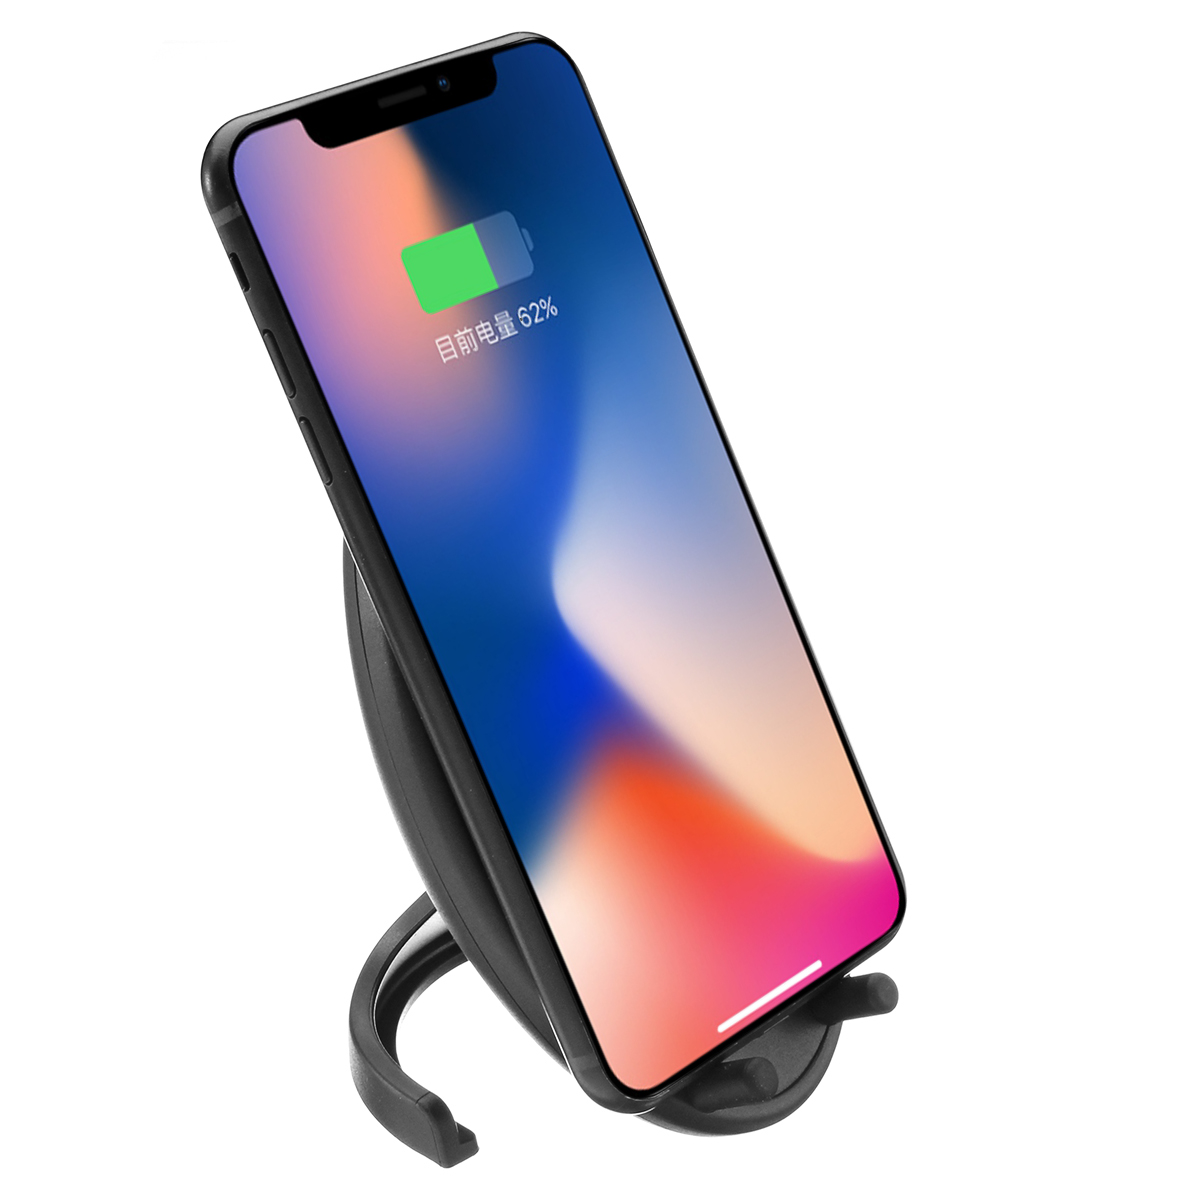 10W 2 Coils Qi Fast Wireless Charger With Cooling Fan For iPhone X 8/8..